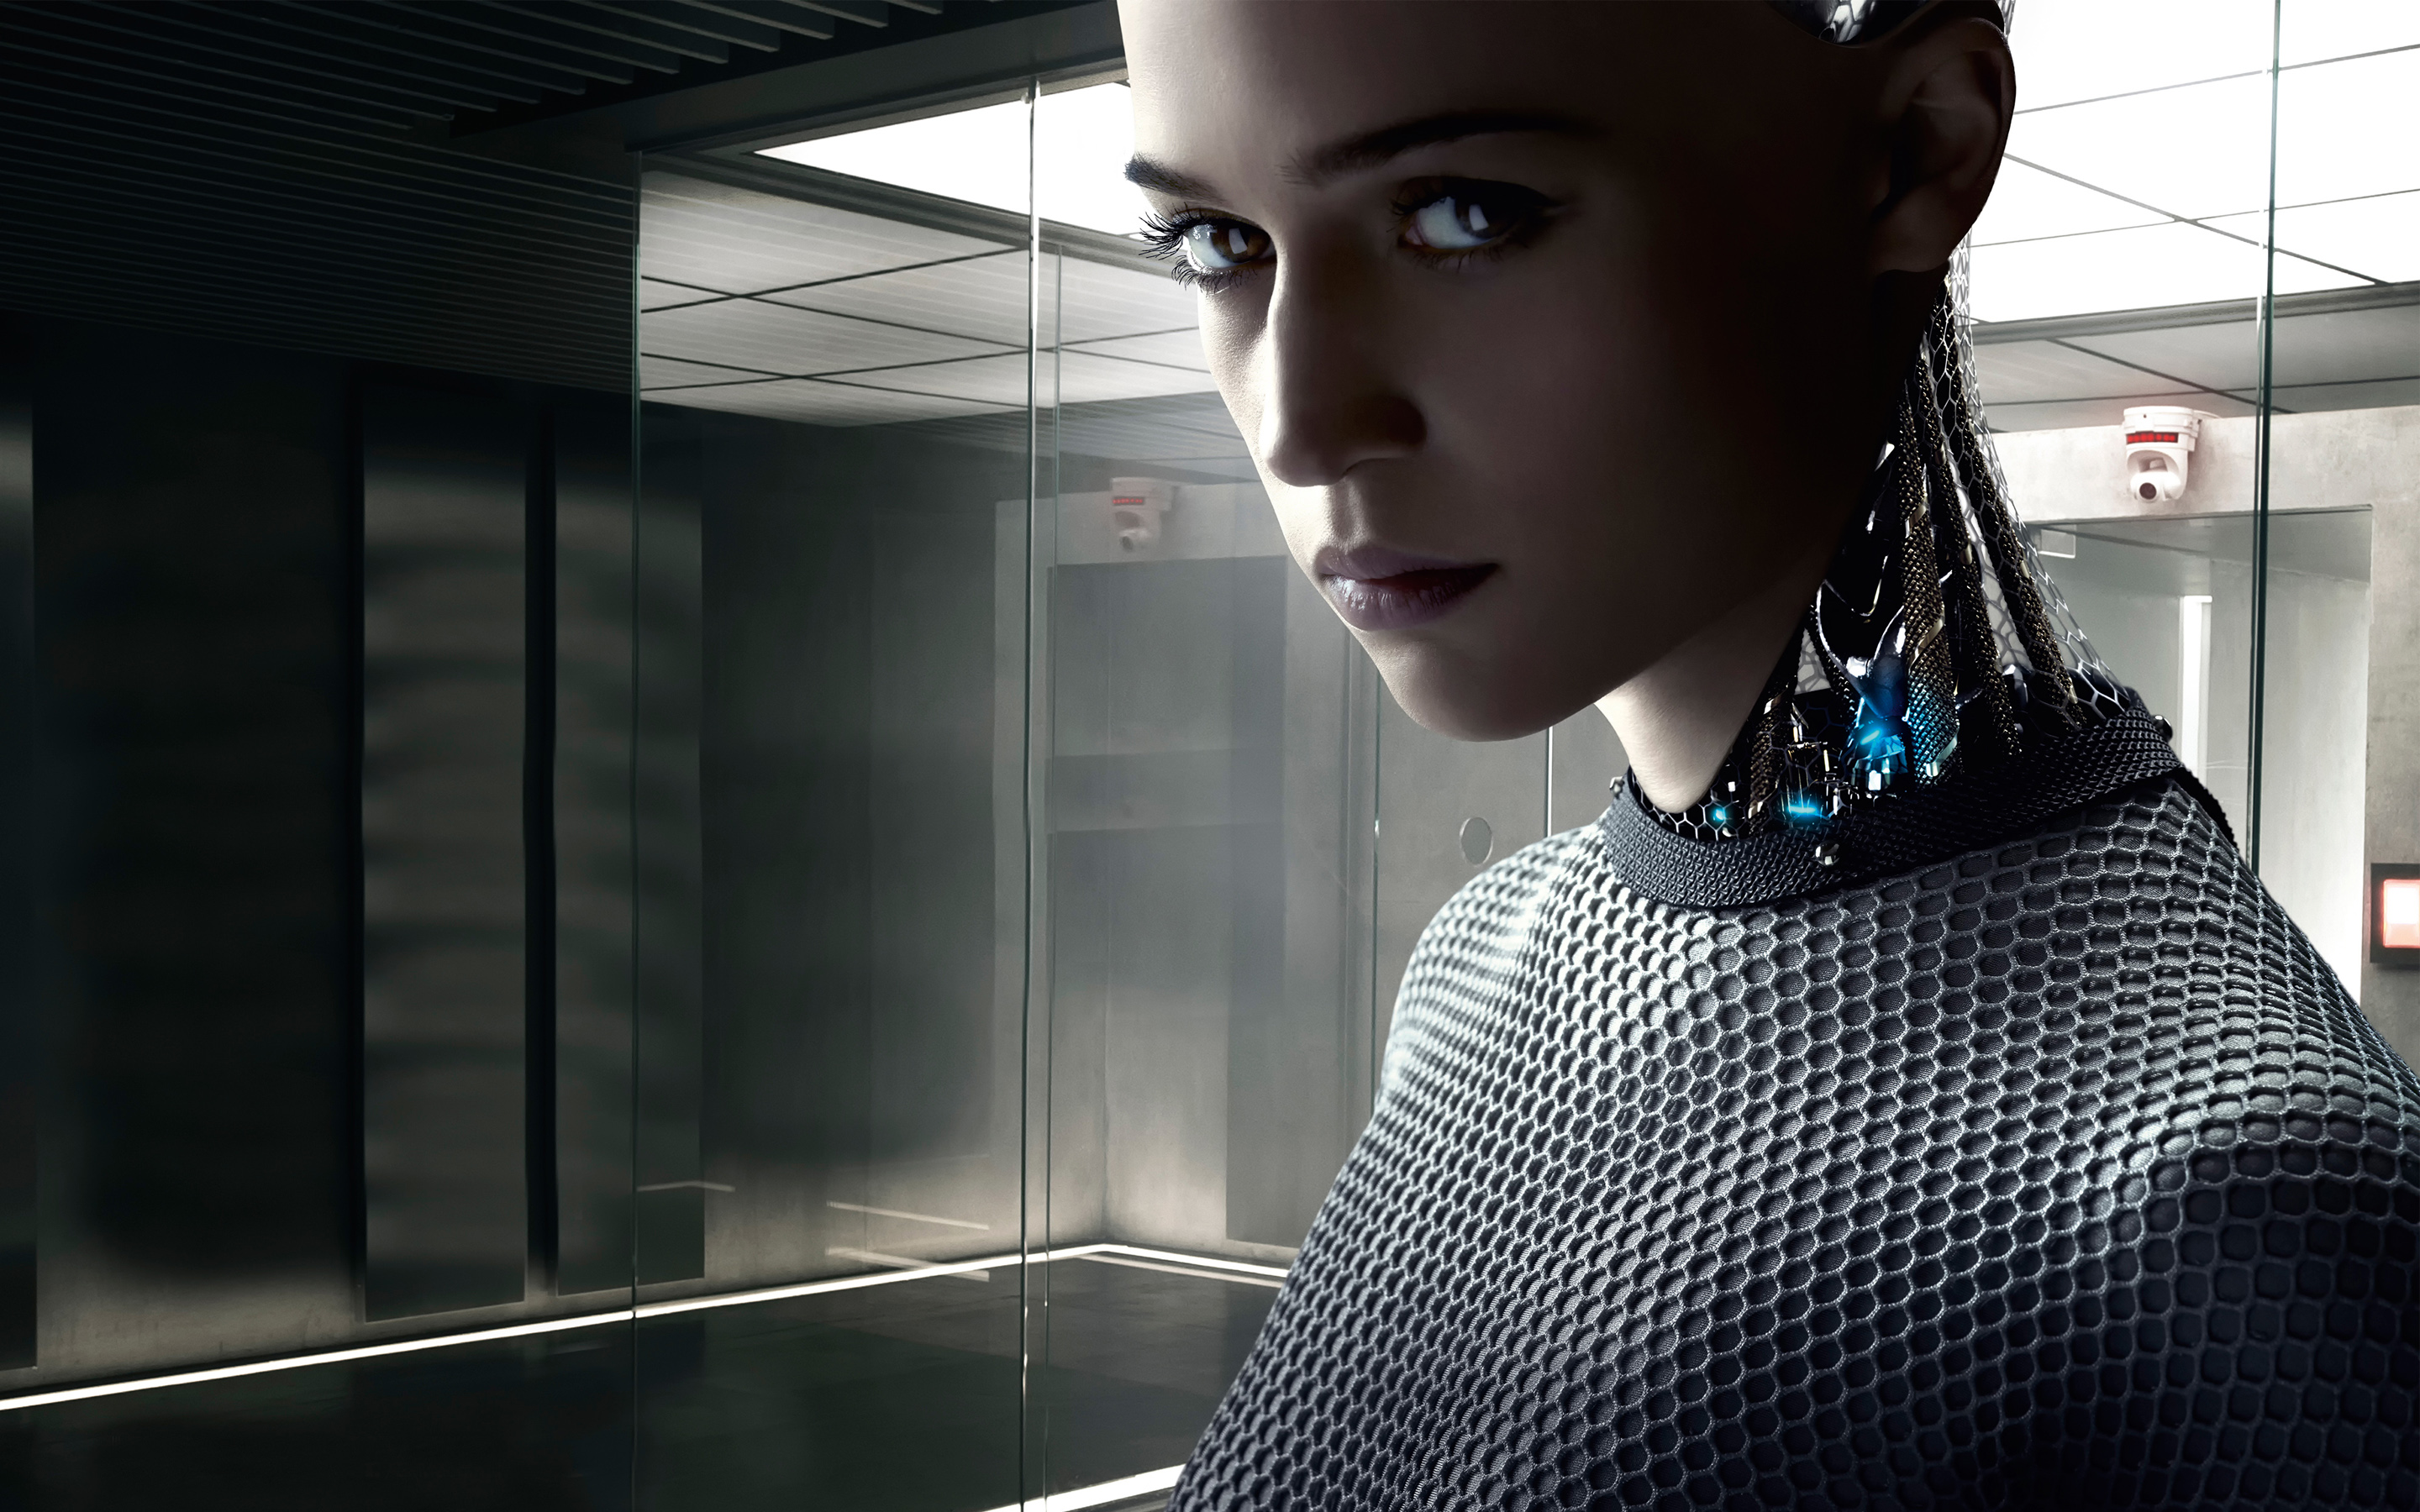 Ex Machina 2015 Movie 1080.91 Kb